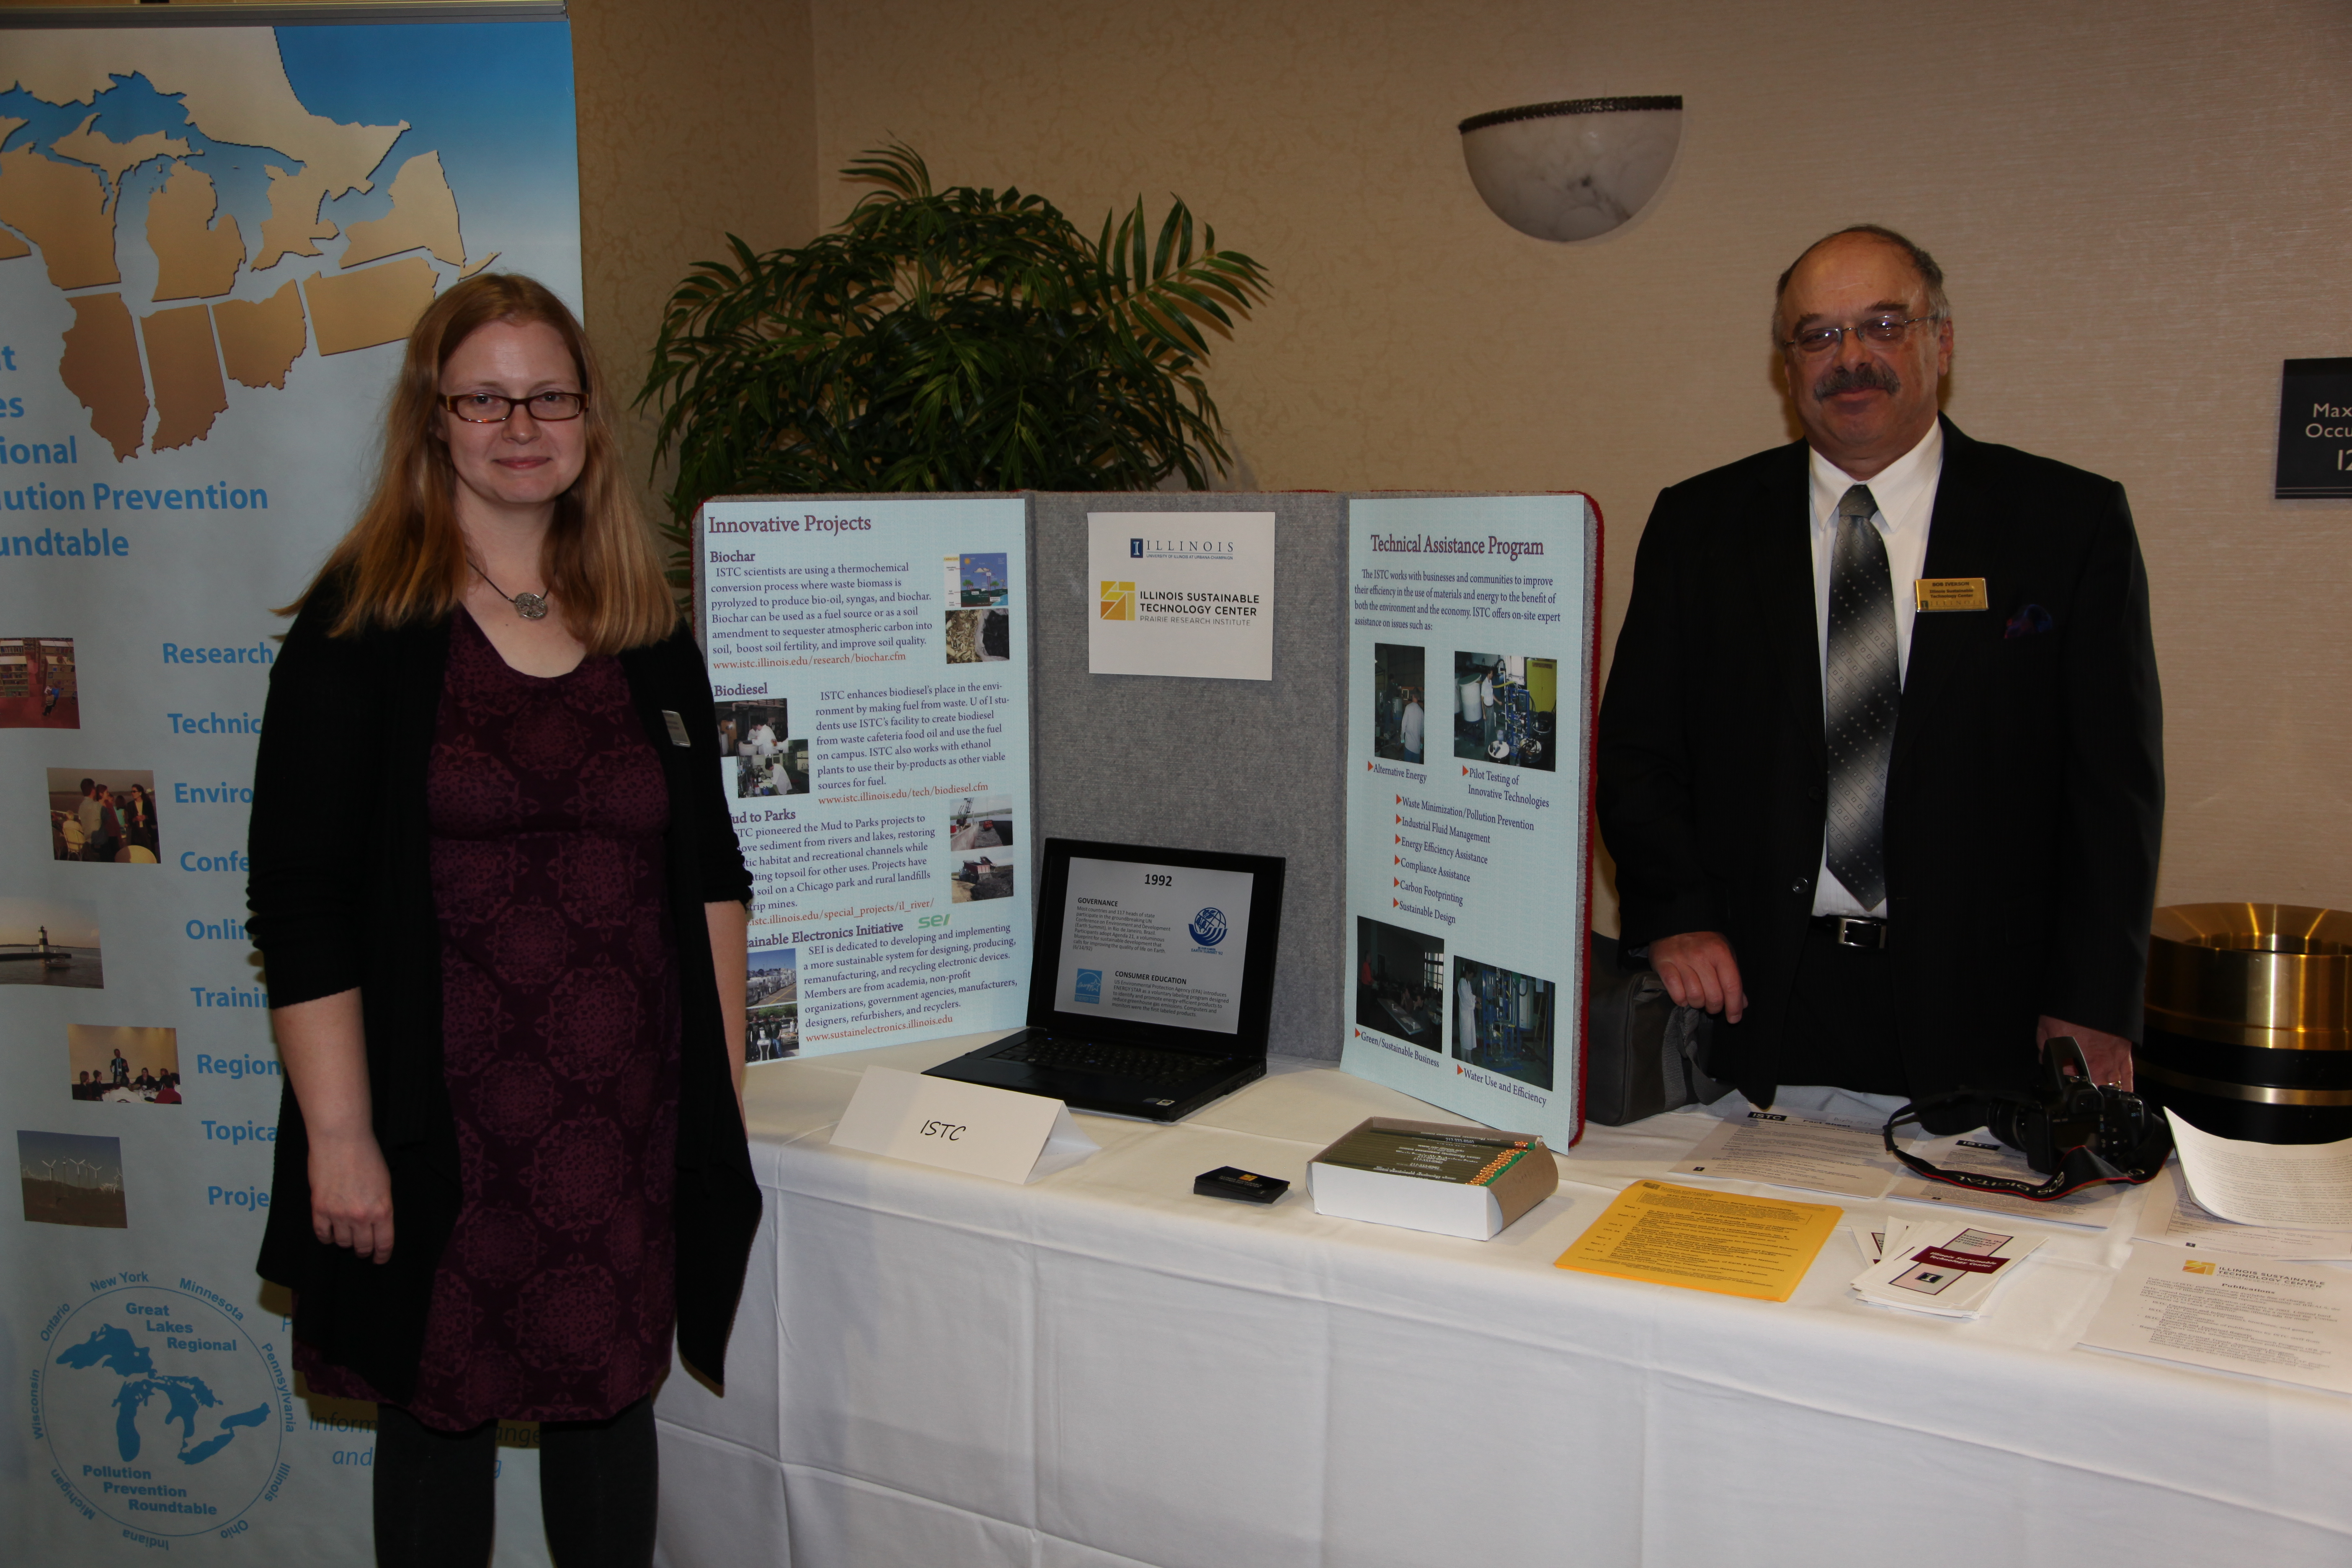 Joy Scrogum and Bob Iverson at ISTC display